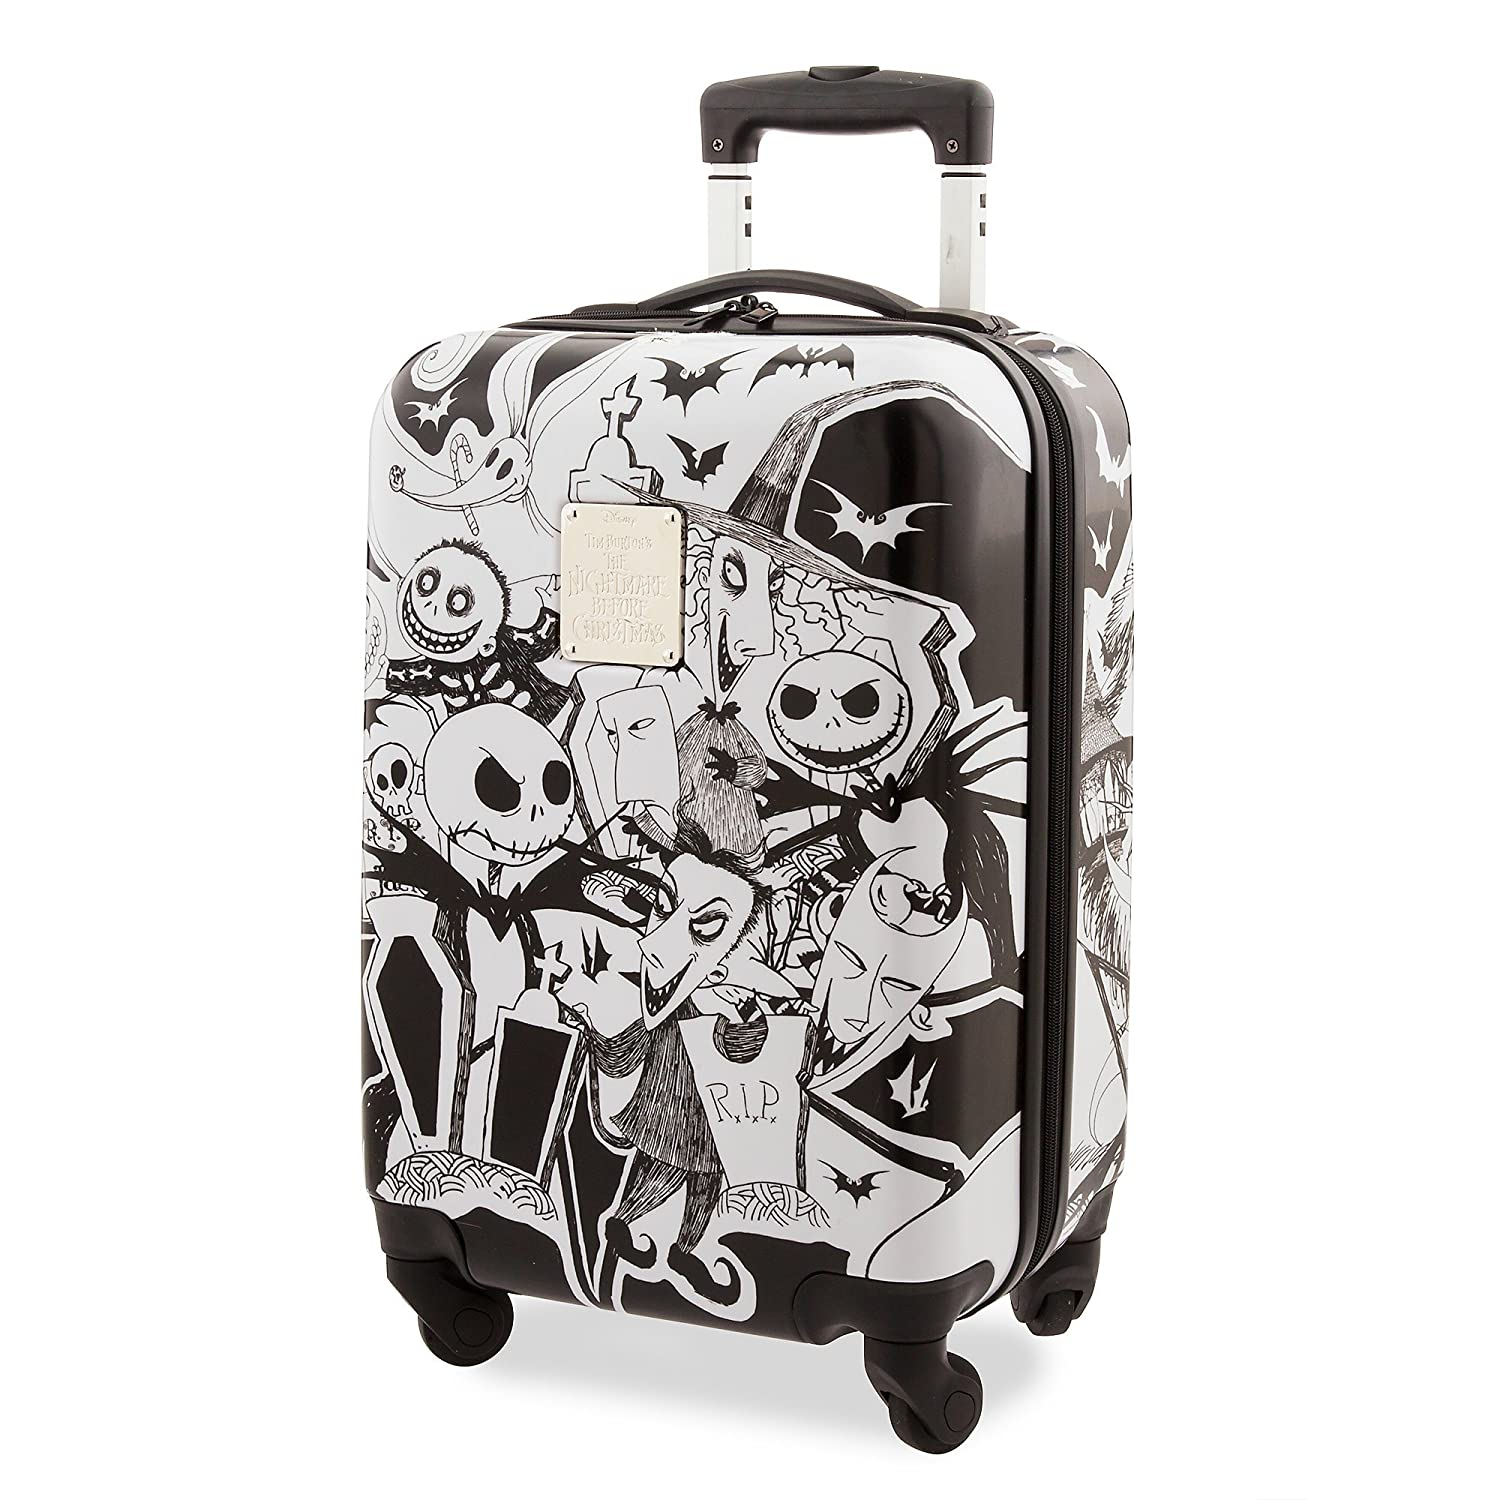 Disney Jack Skellington and Friends Rolling Luggage 427247955168